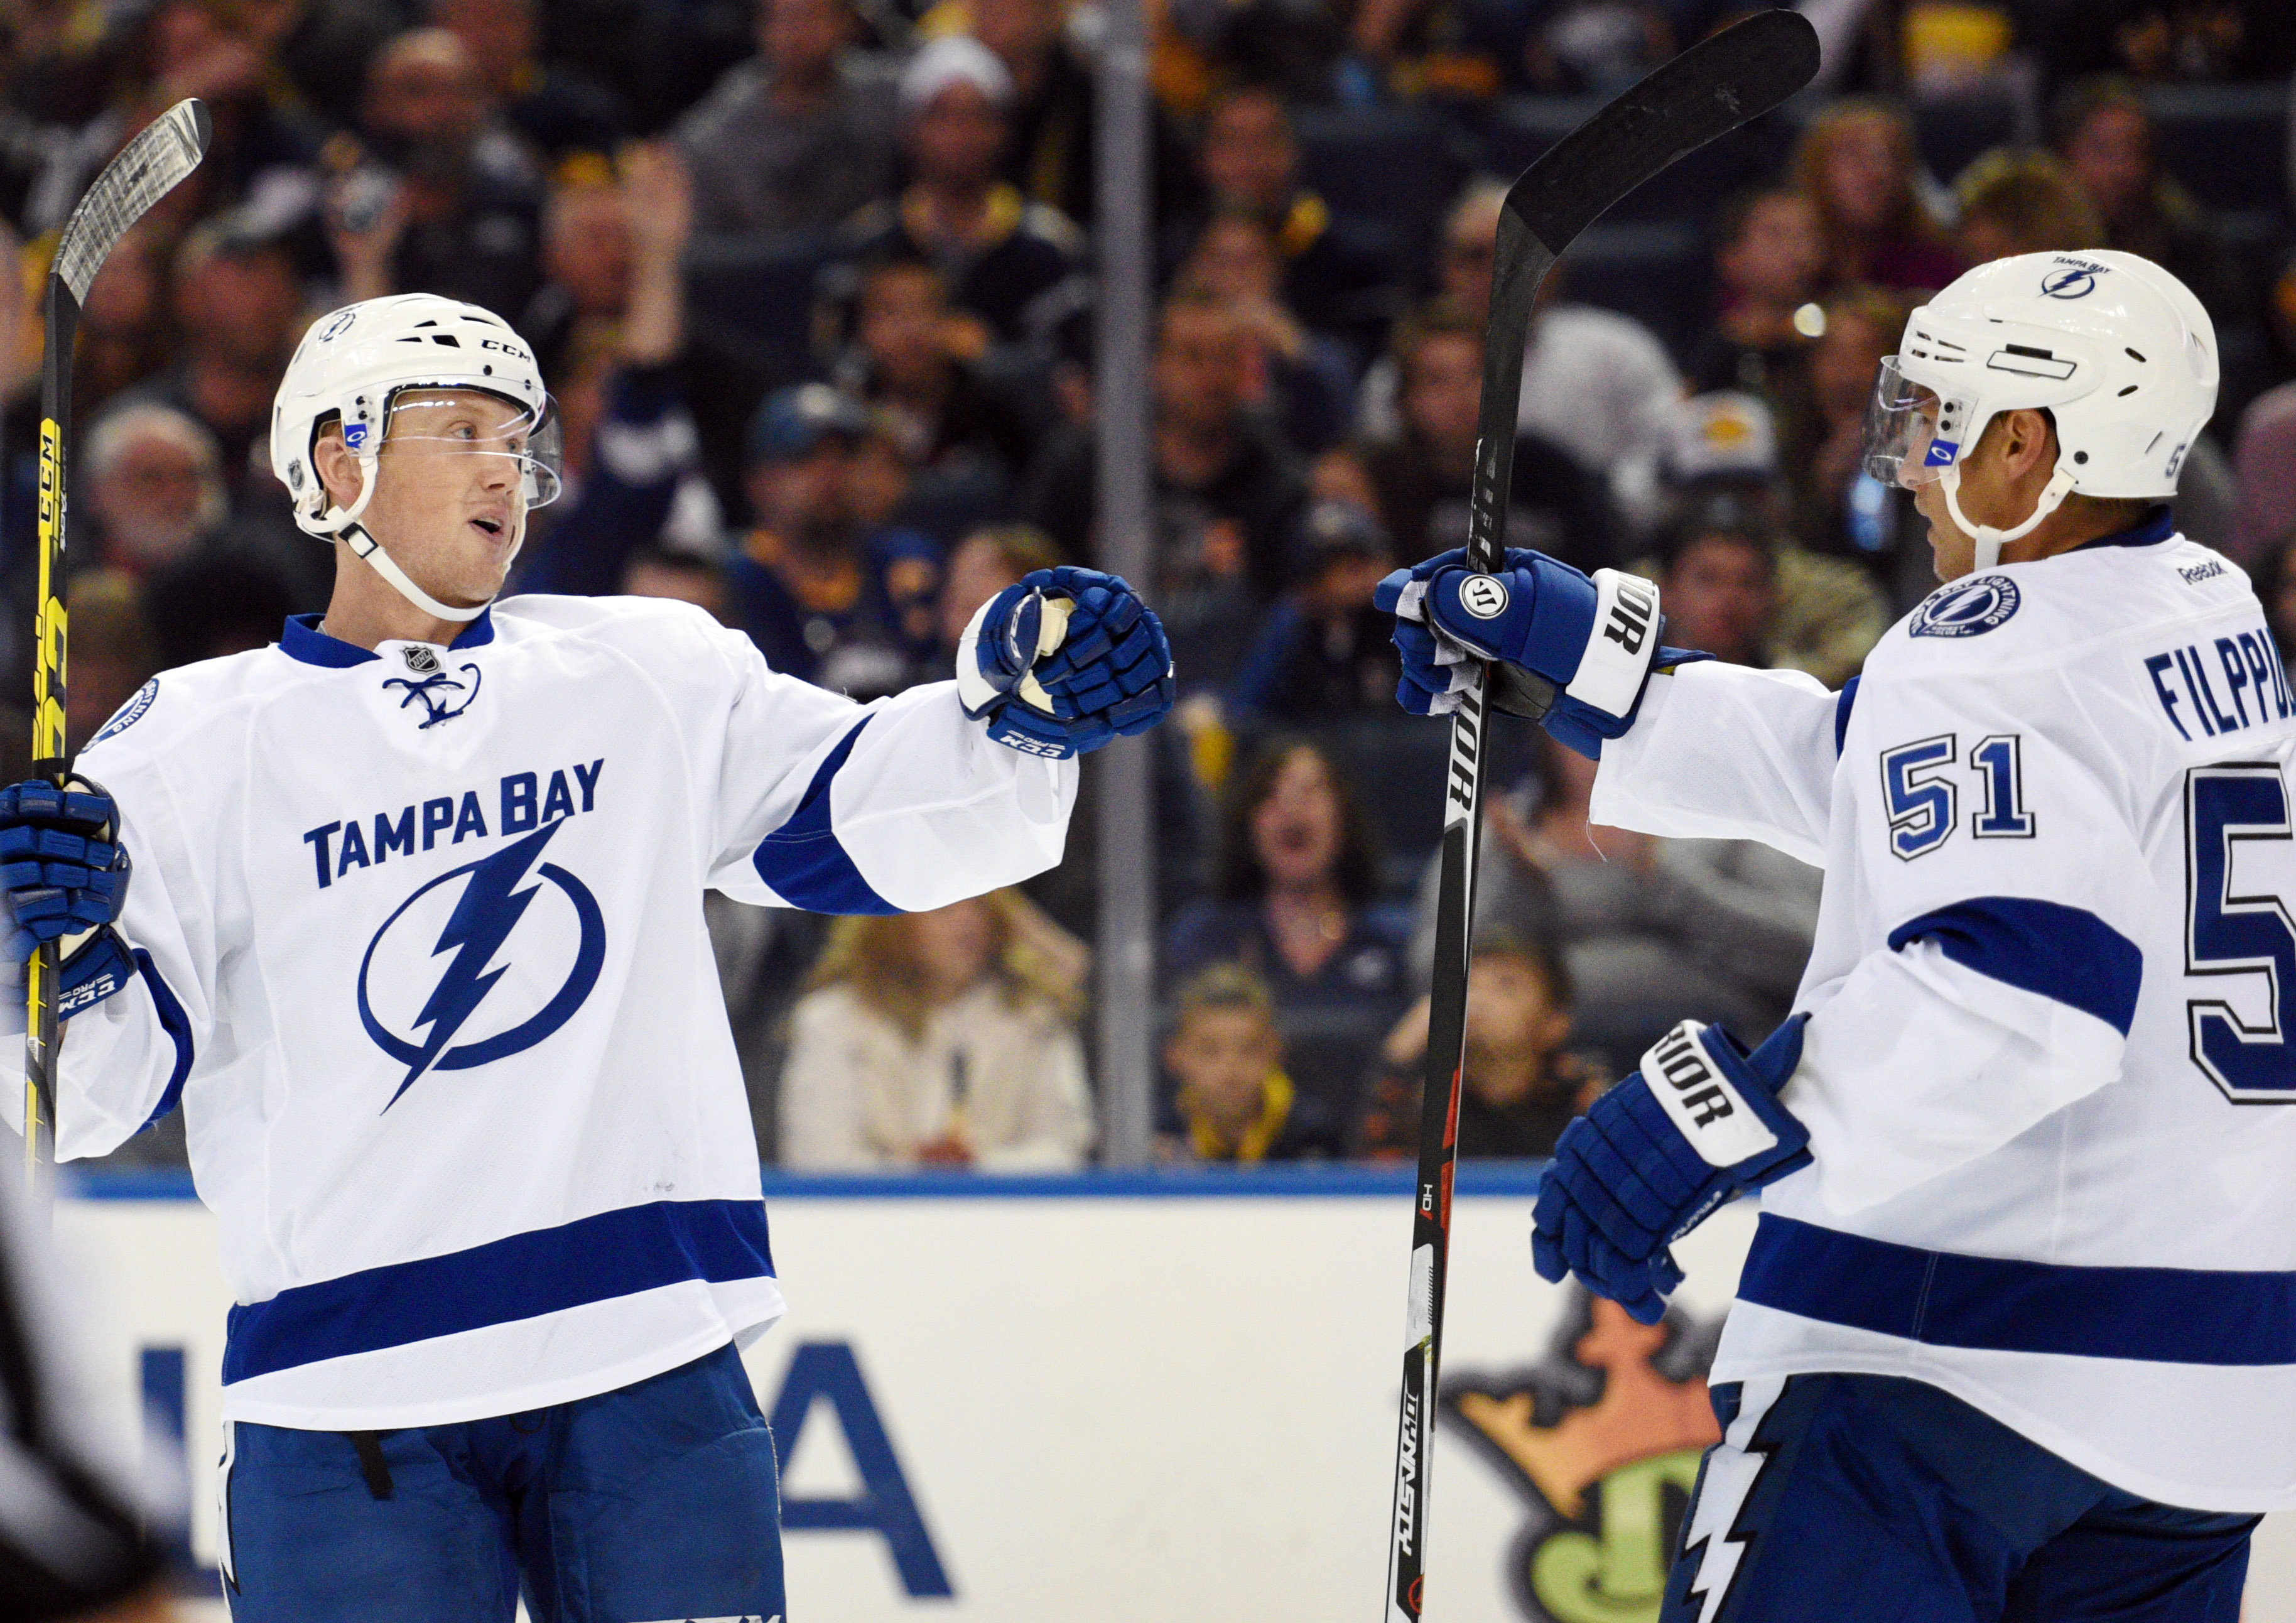 Tampa Bay Lightning right winger Erik Condra, right, celebrates his goal with center Valtteri Filppula (51) during second period action of an NHL hockey game against the Buffalo Sabres, Saturday, Oct. 10, 2015, in Buffalo, N.Y. (AP Photo/Gary Wiepert)